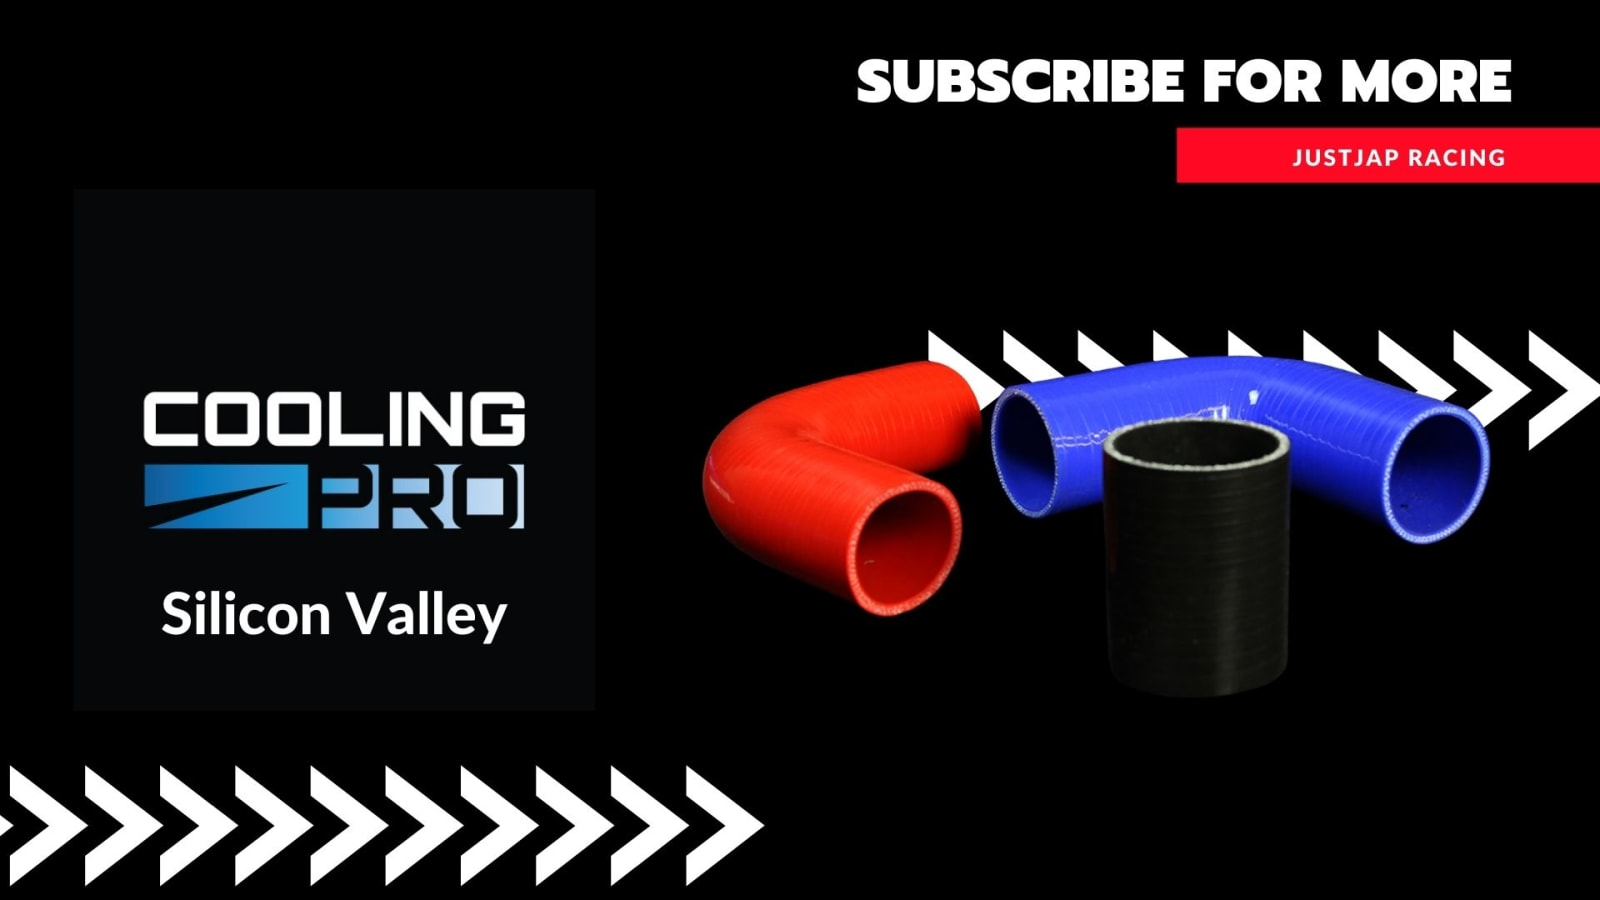 Cooling Pro Silicone 2.5 Inch / 63mm - 3.5 Inch Straight Reducer Hose